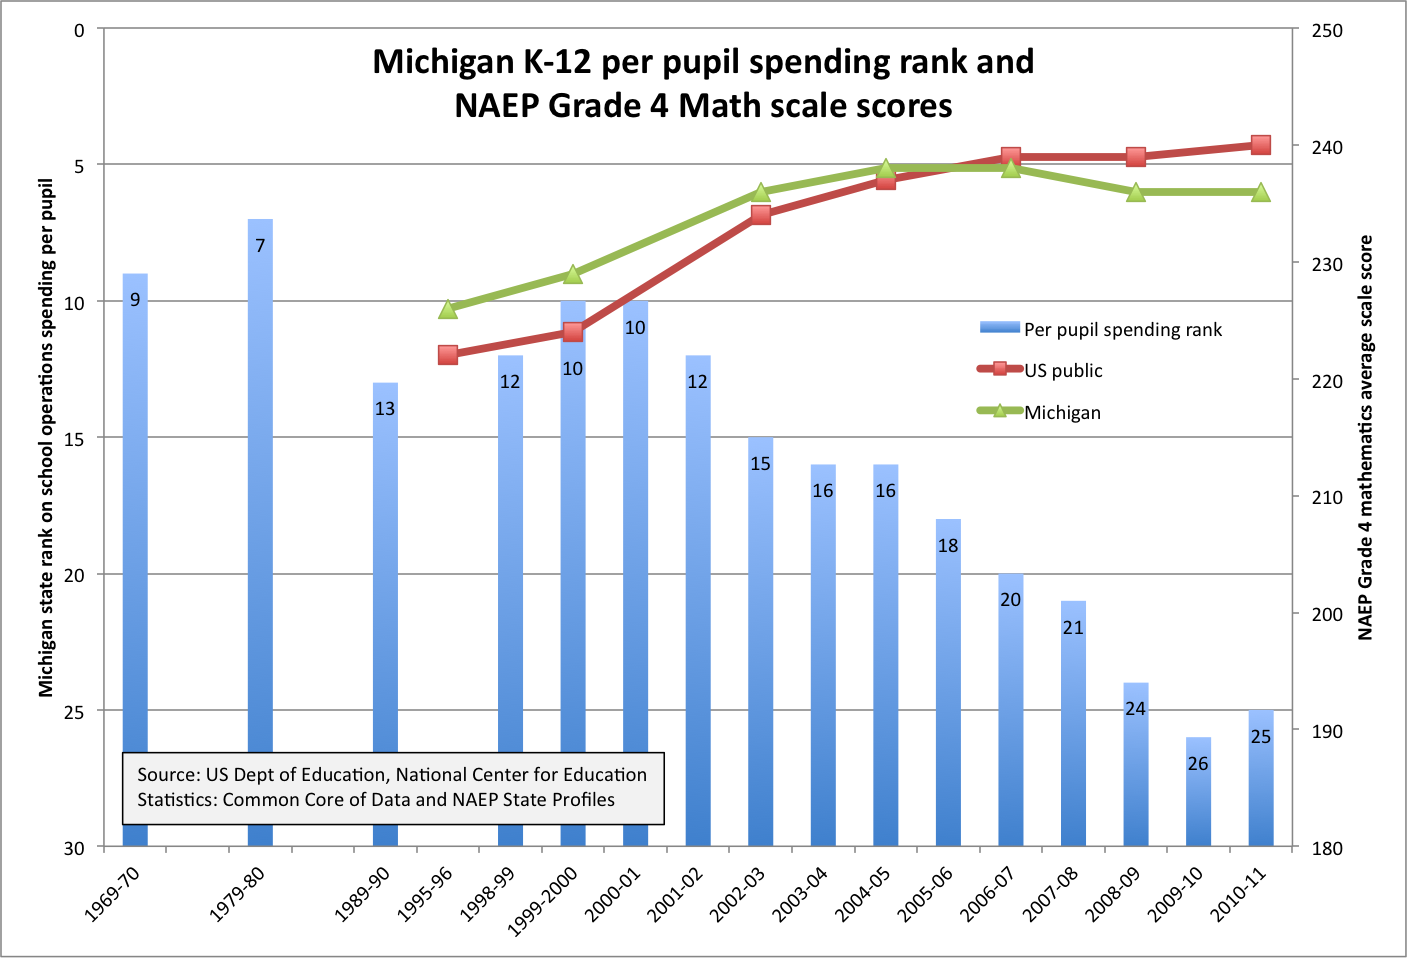 Michigan spending rank and NAEP scores